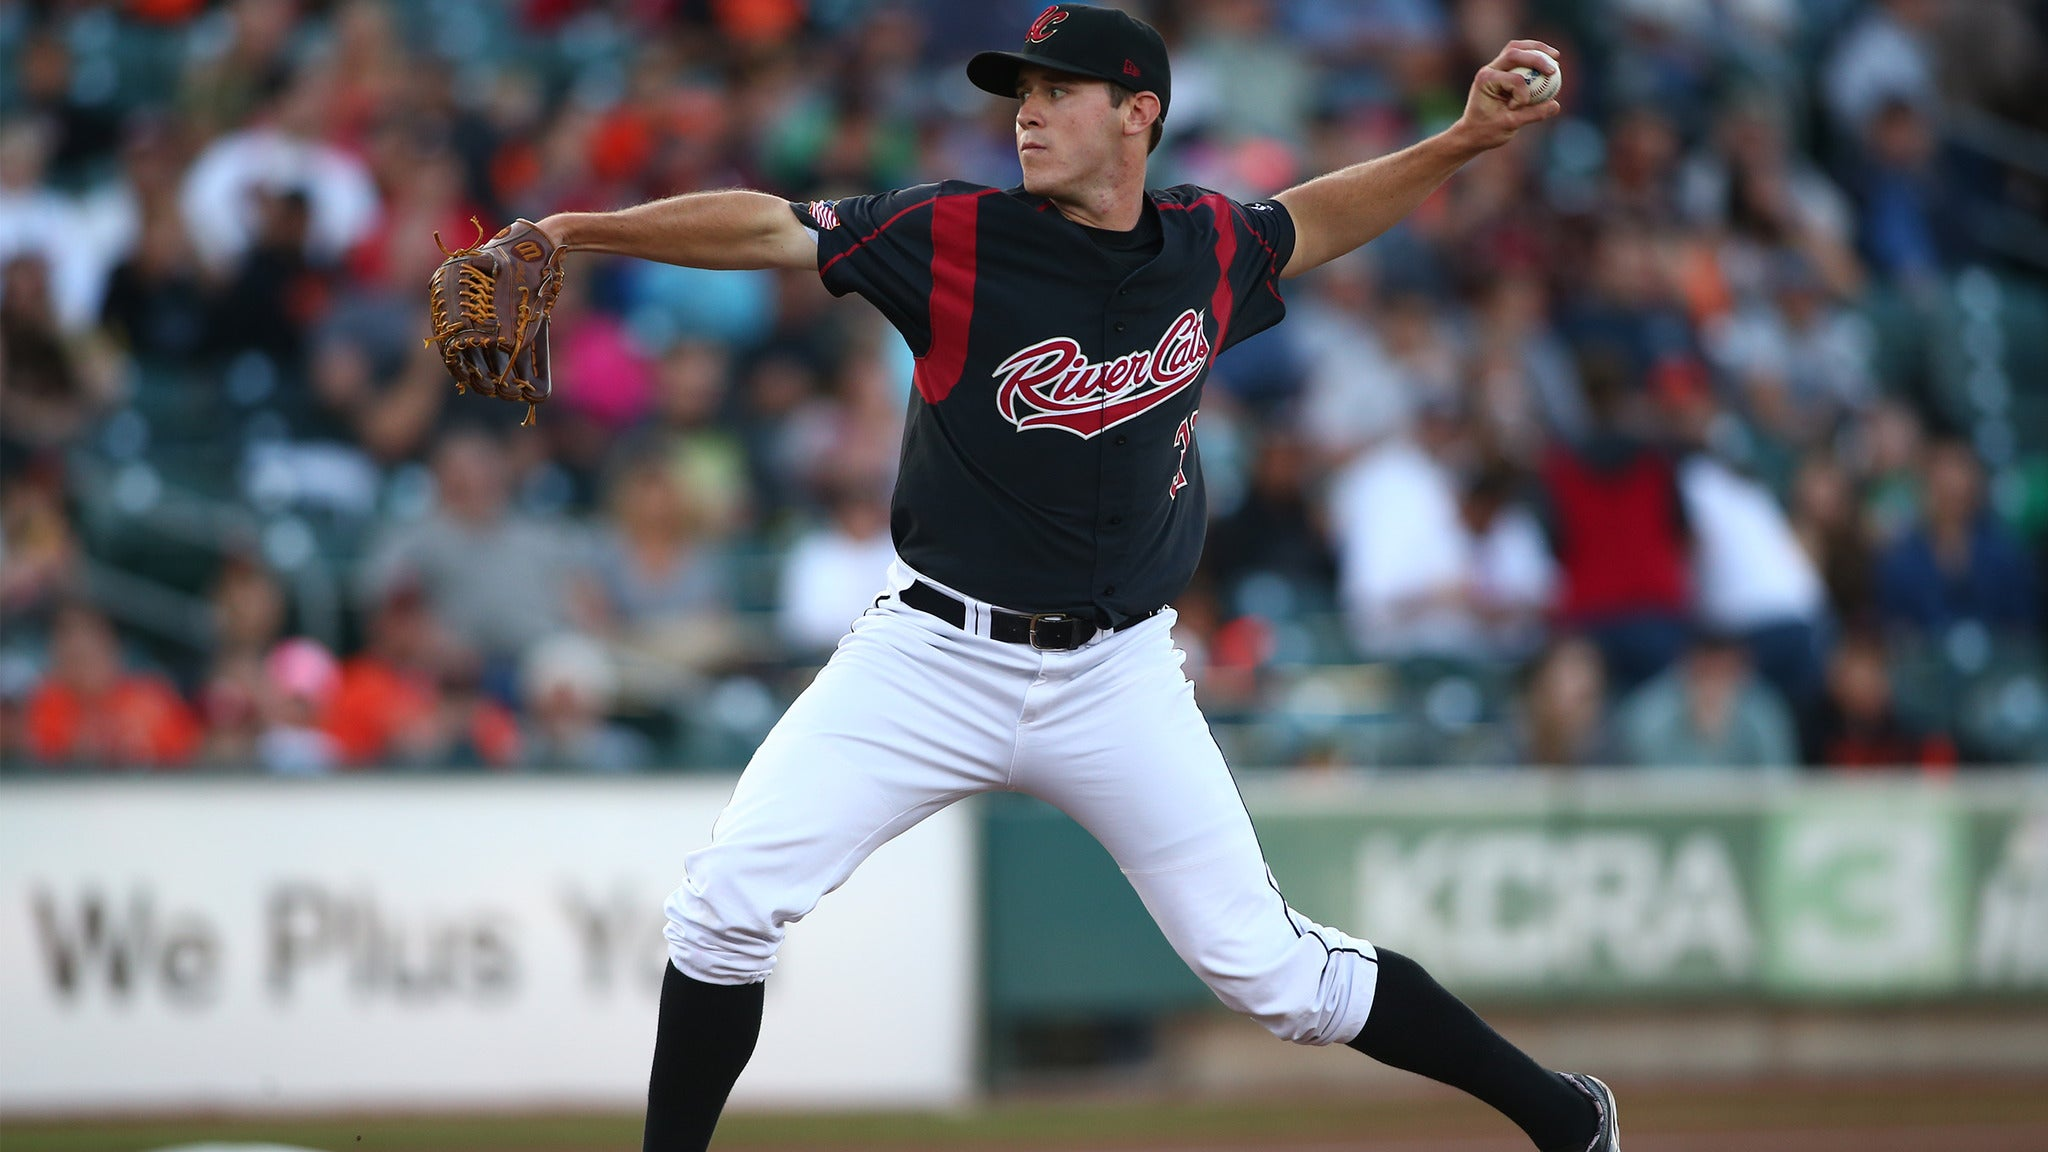 Sacramento River Cats vs. Reno Aces at Sutter Health Park